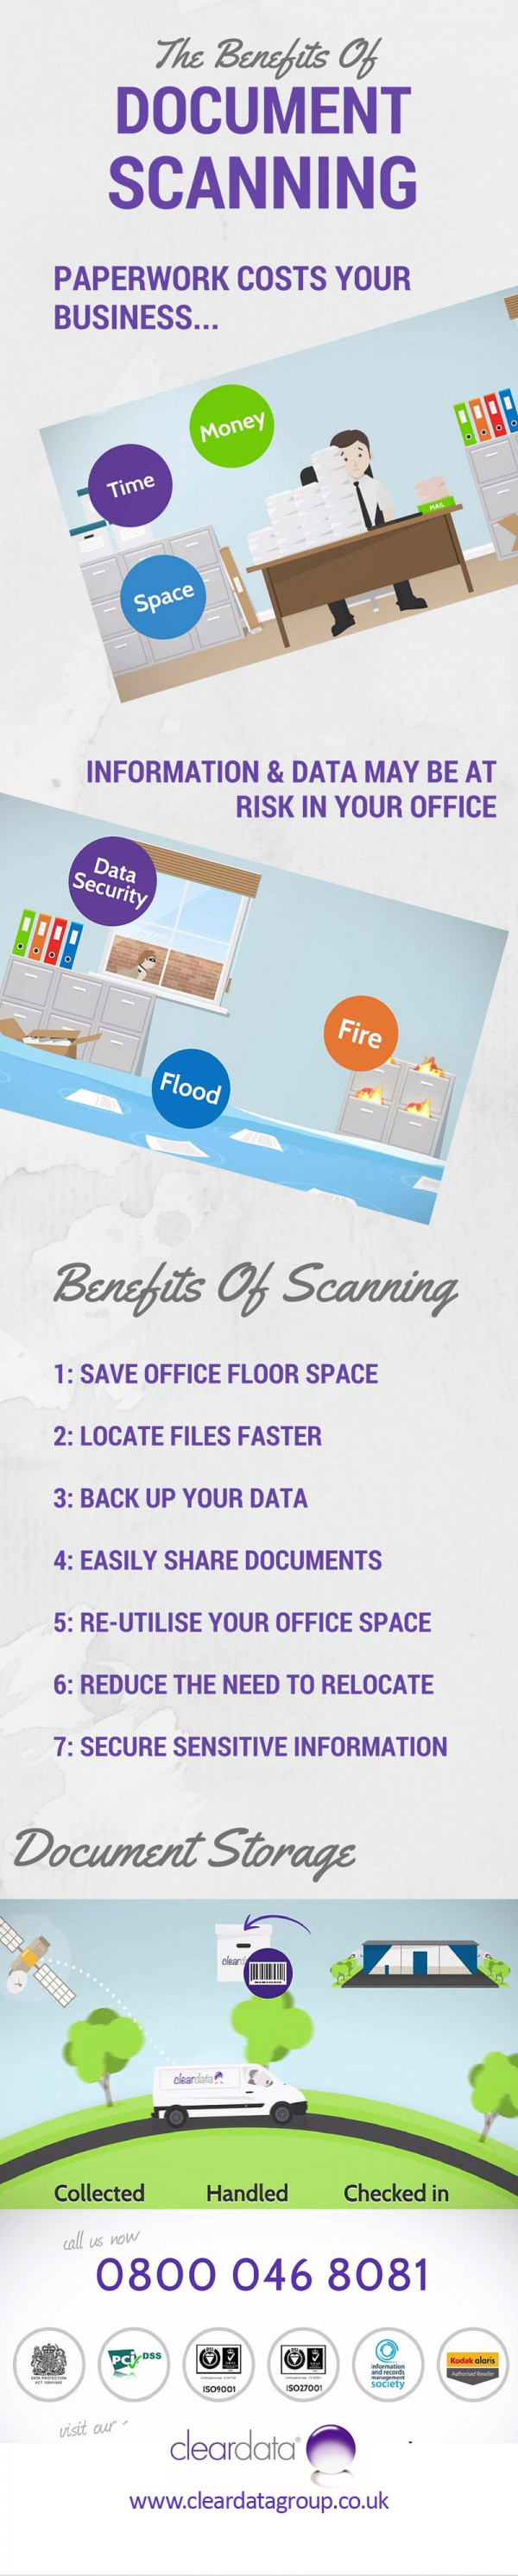 Benefits-Of-Document-Scanni